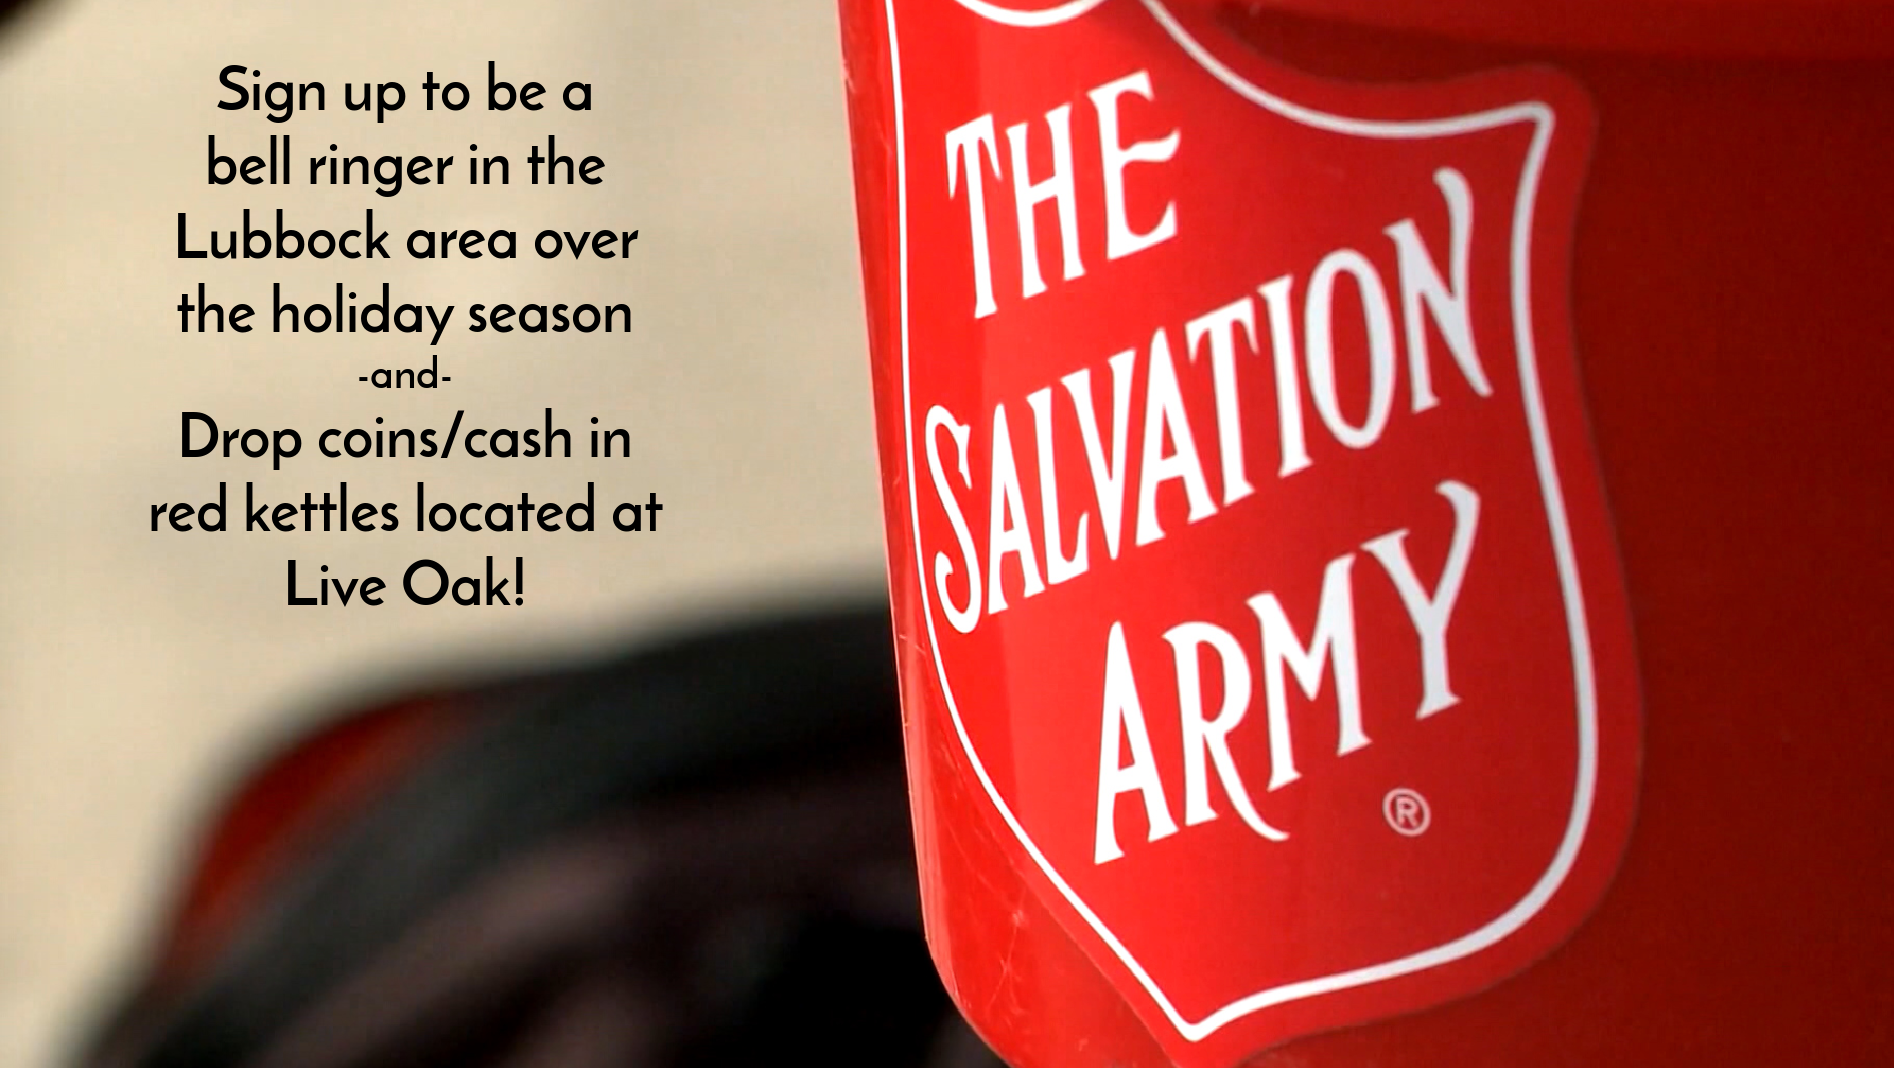 Partner with the Salvation Army